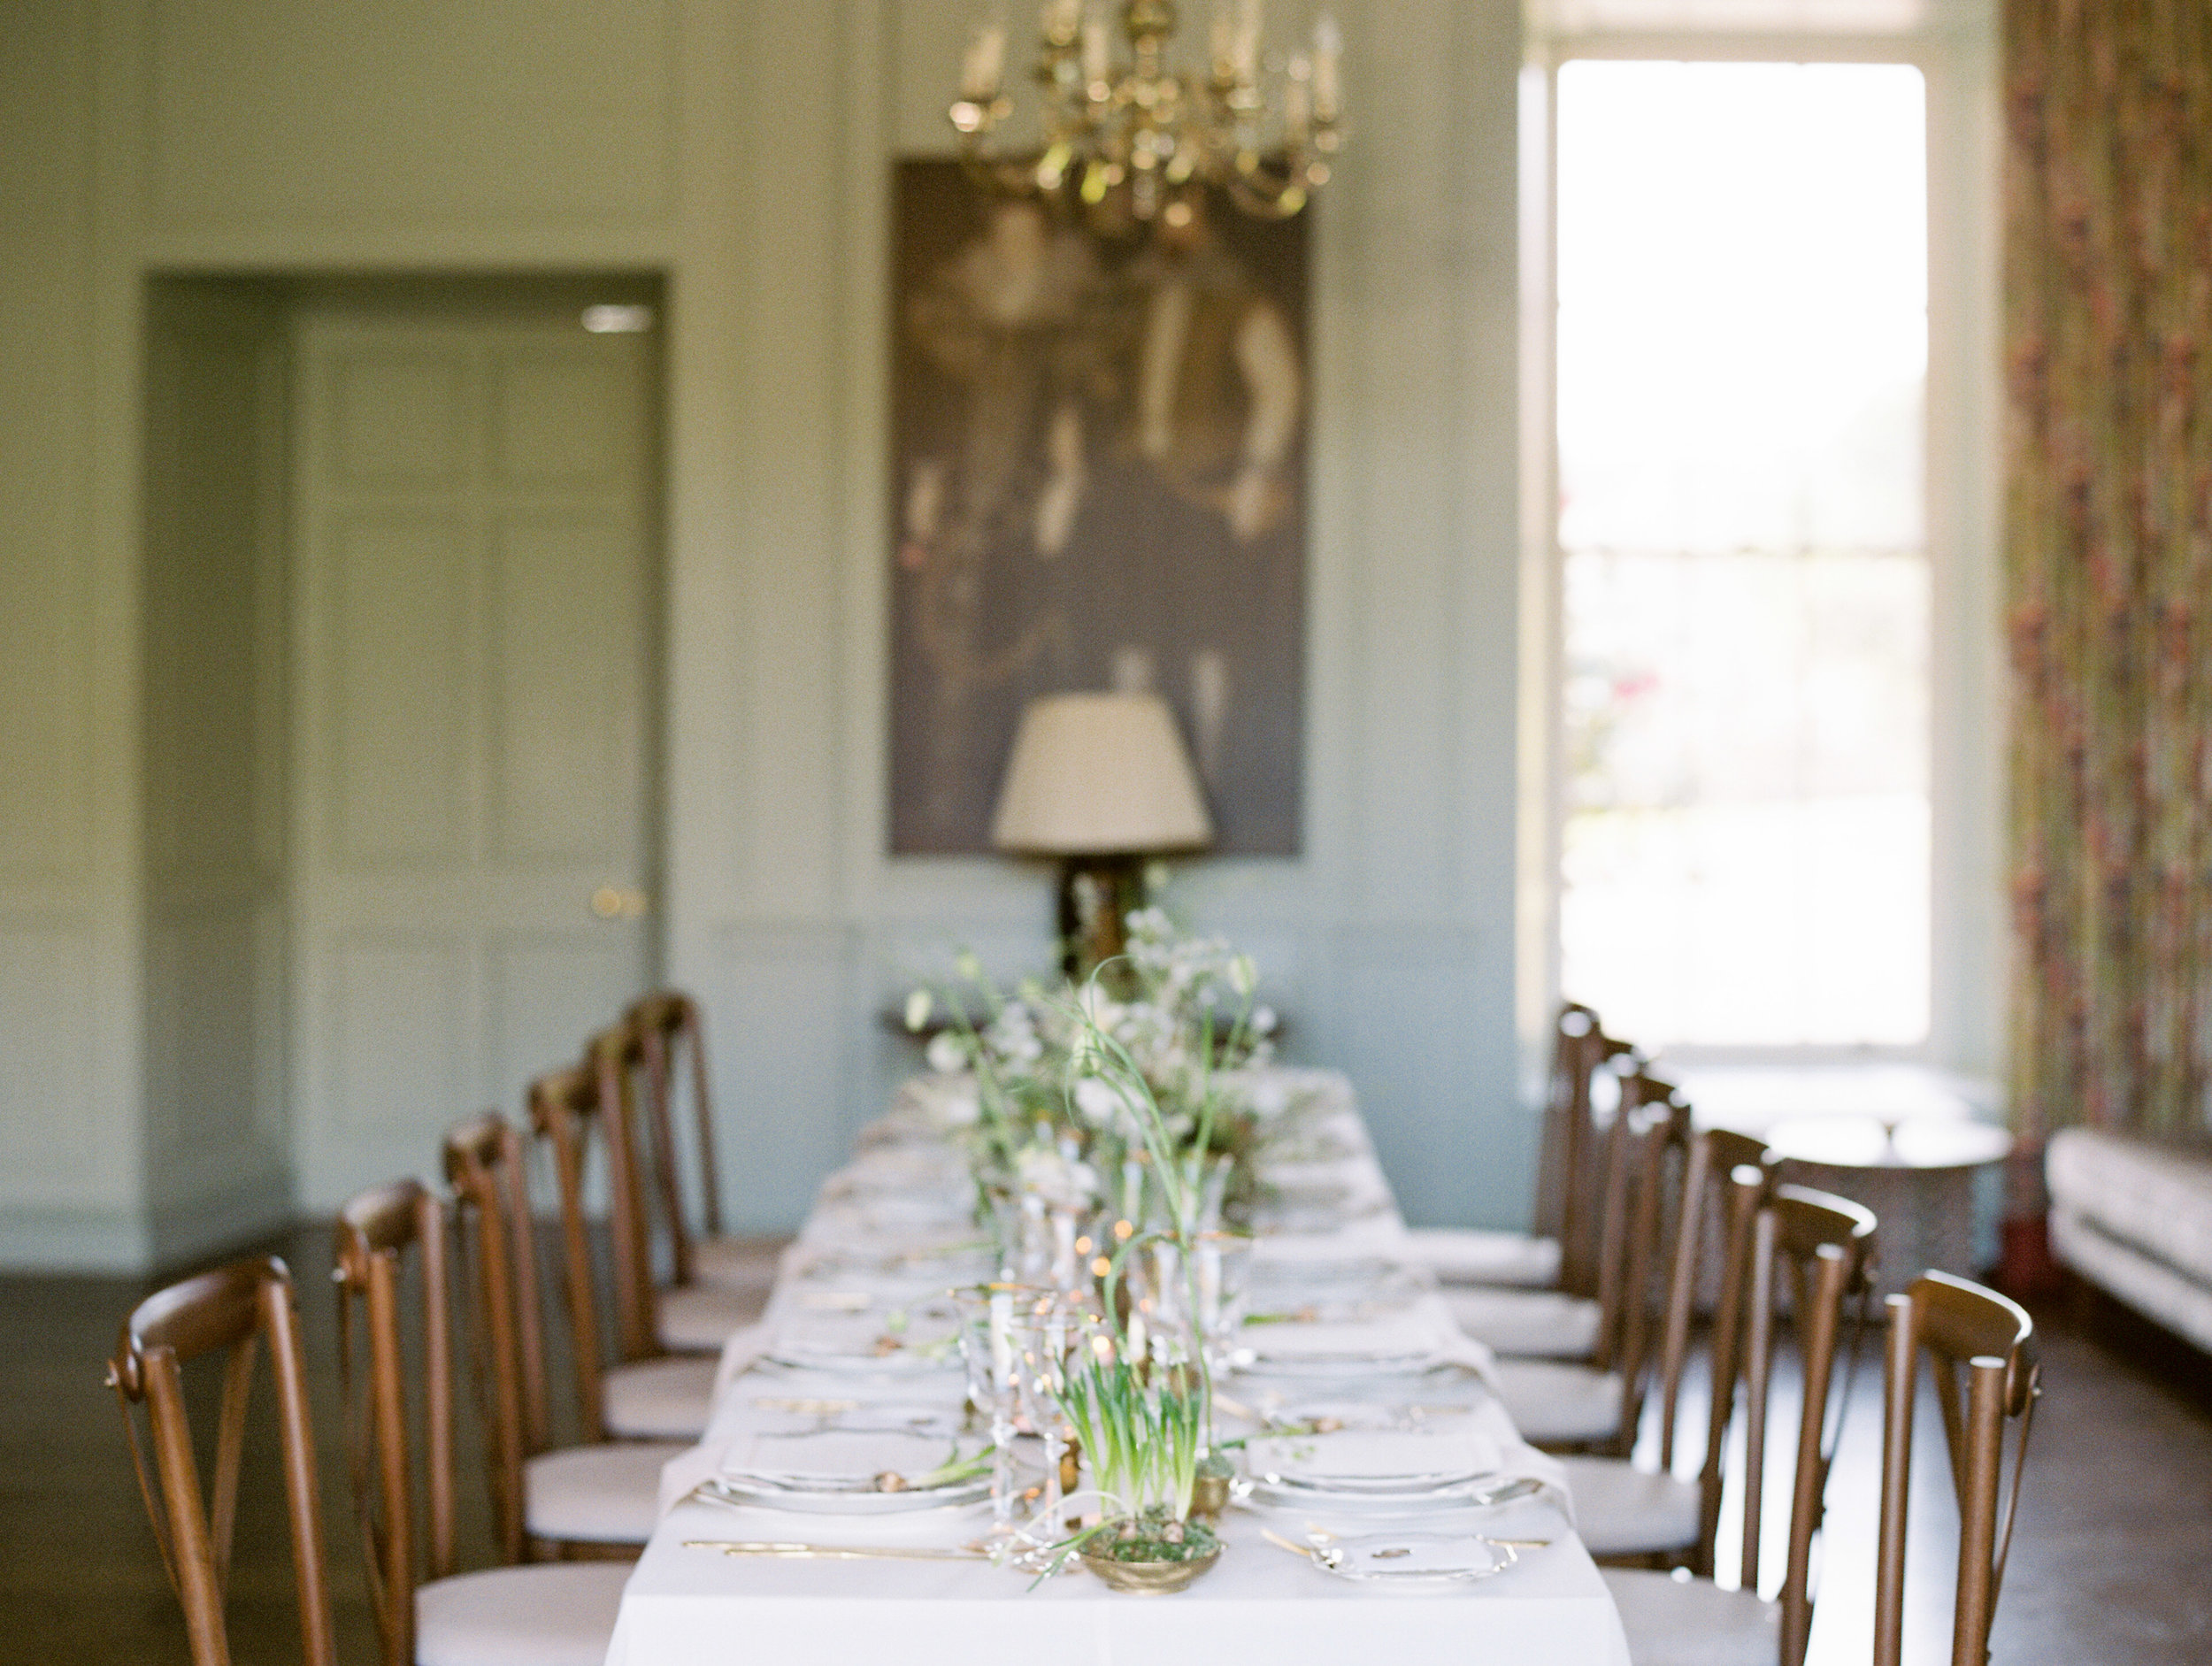 The Timeless Stylist-Elegant and Timeless Wedding Design and Styling-Spring Table Decor-Vintage Brass